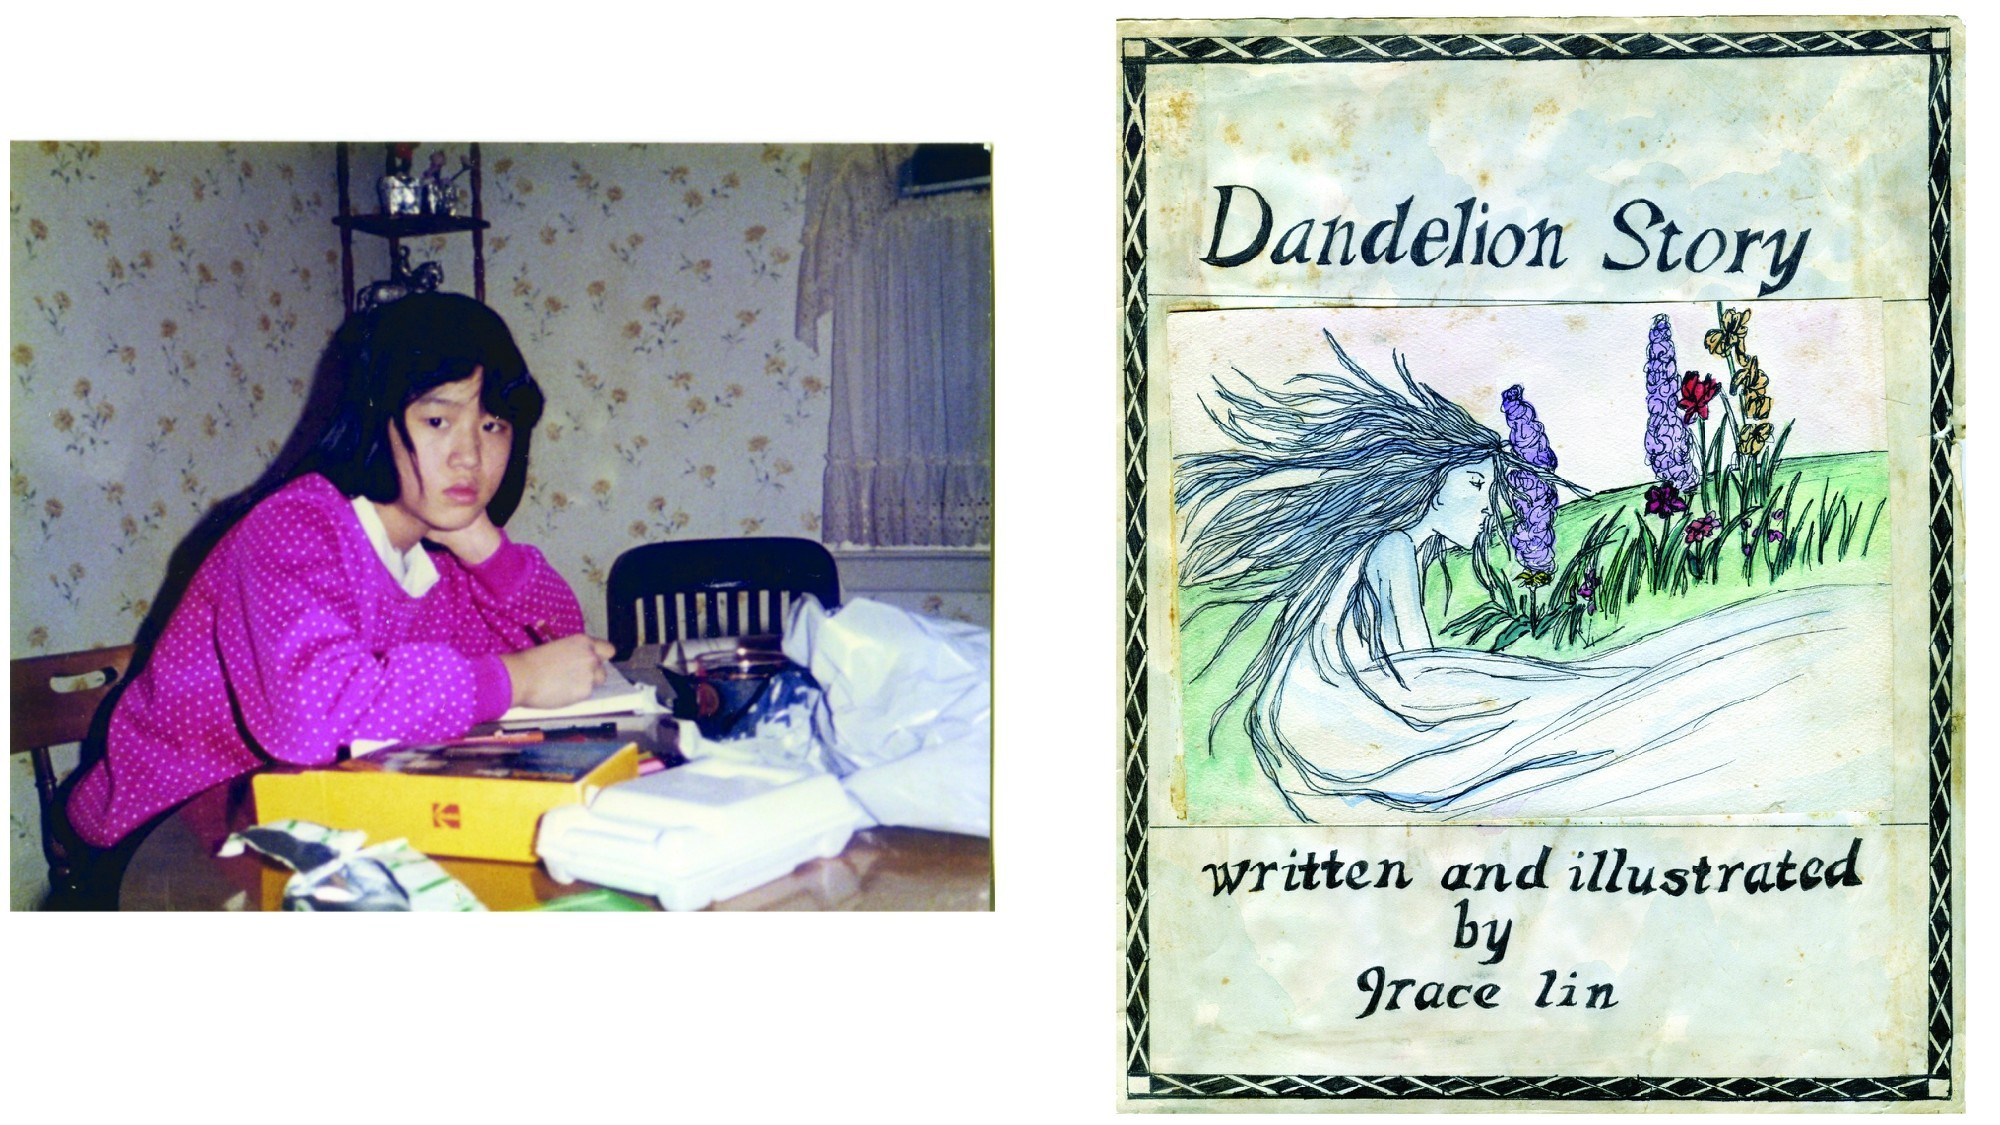 """Grace Lin and the cover of """"Dandelion Story."""""""